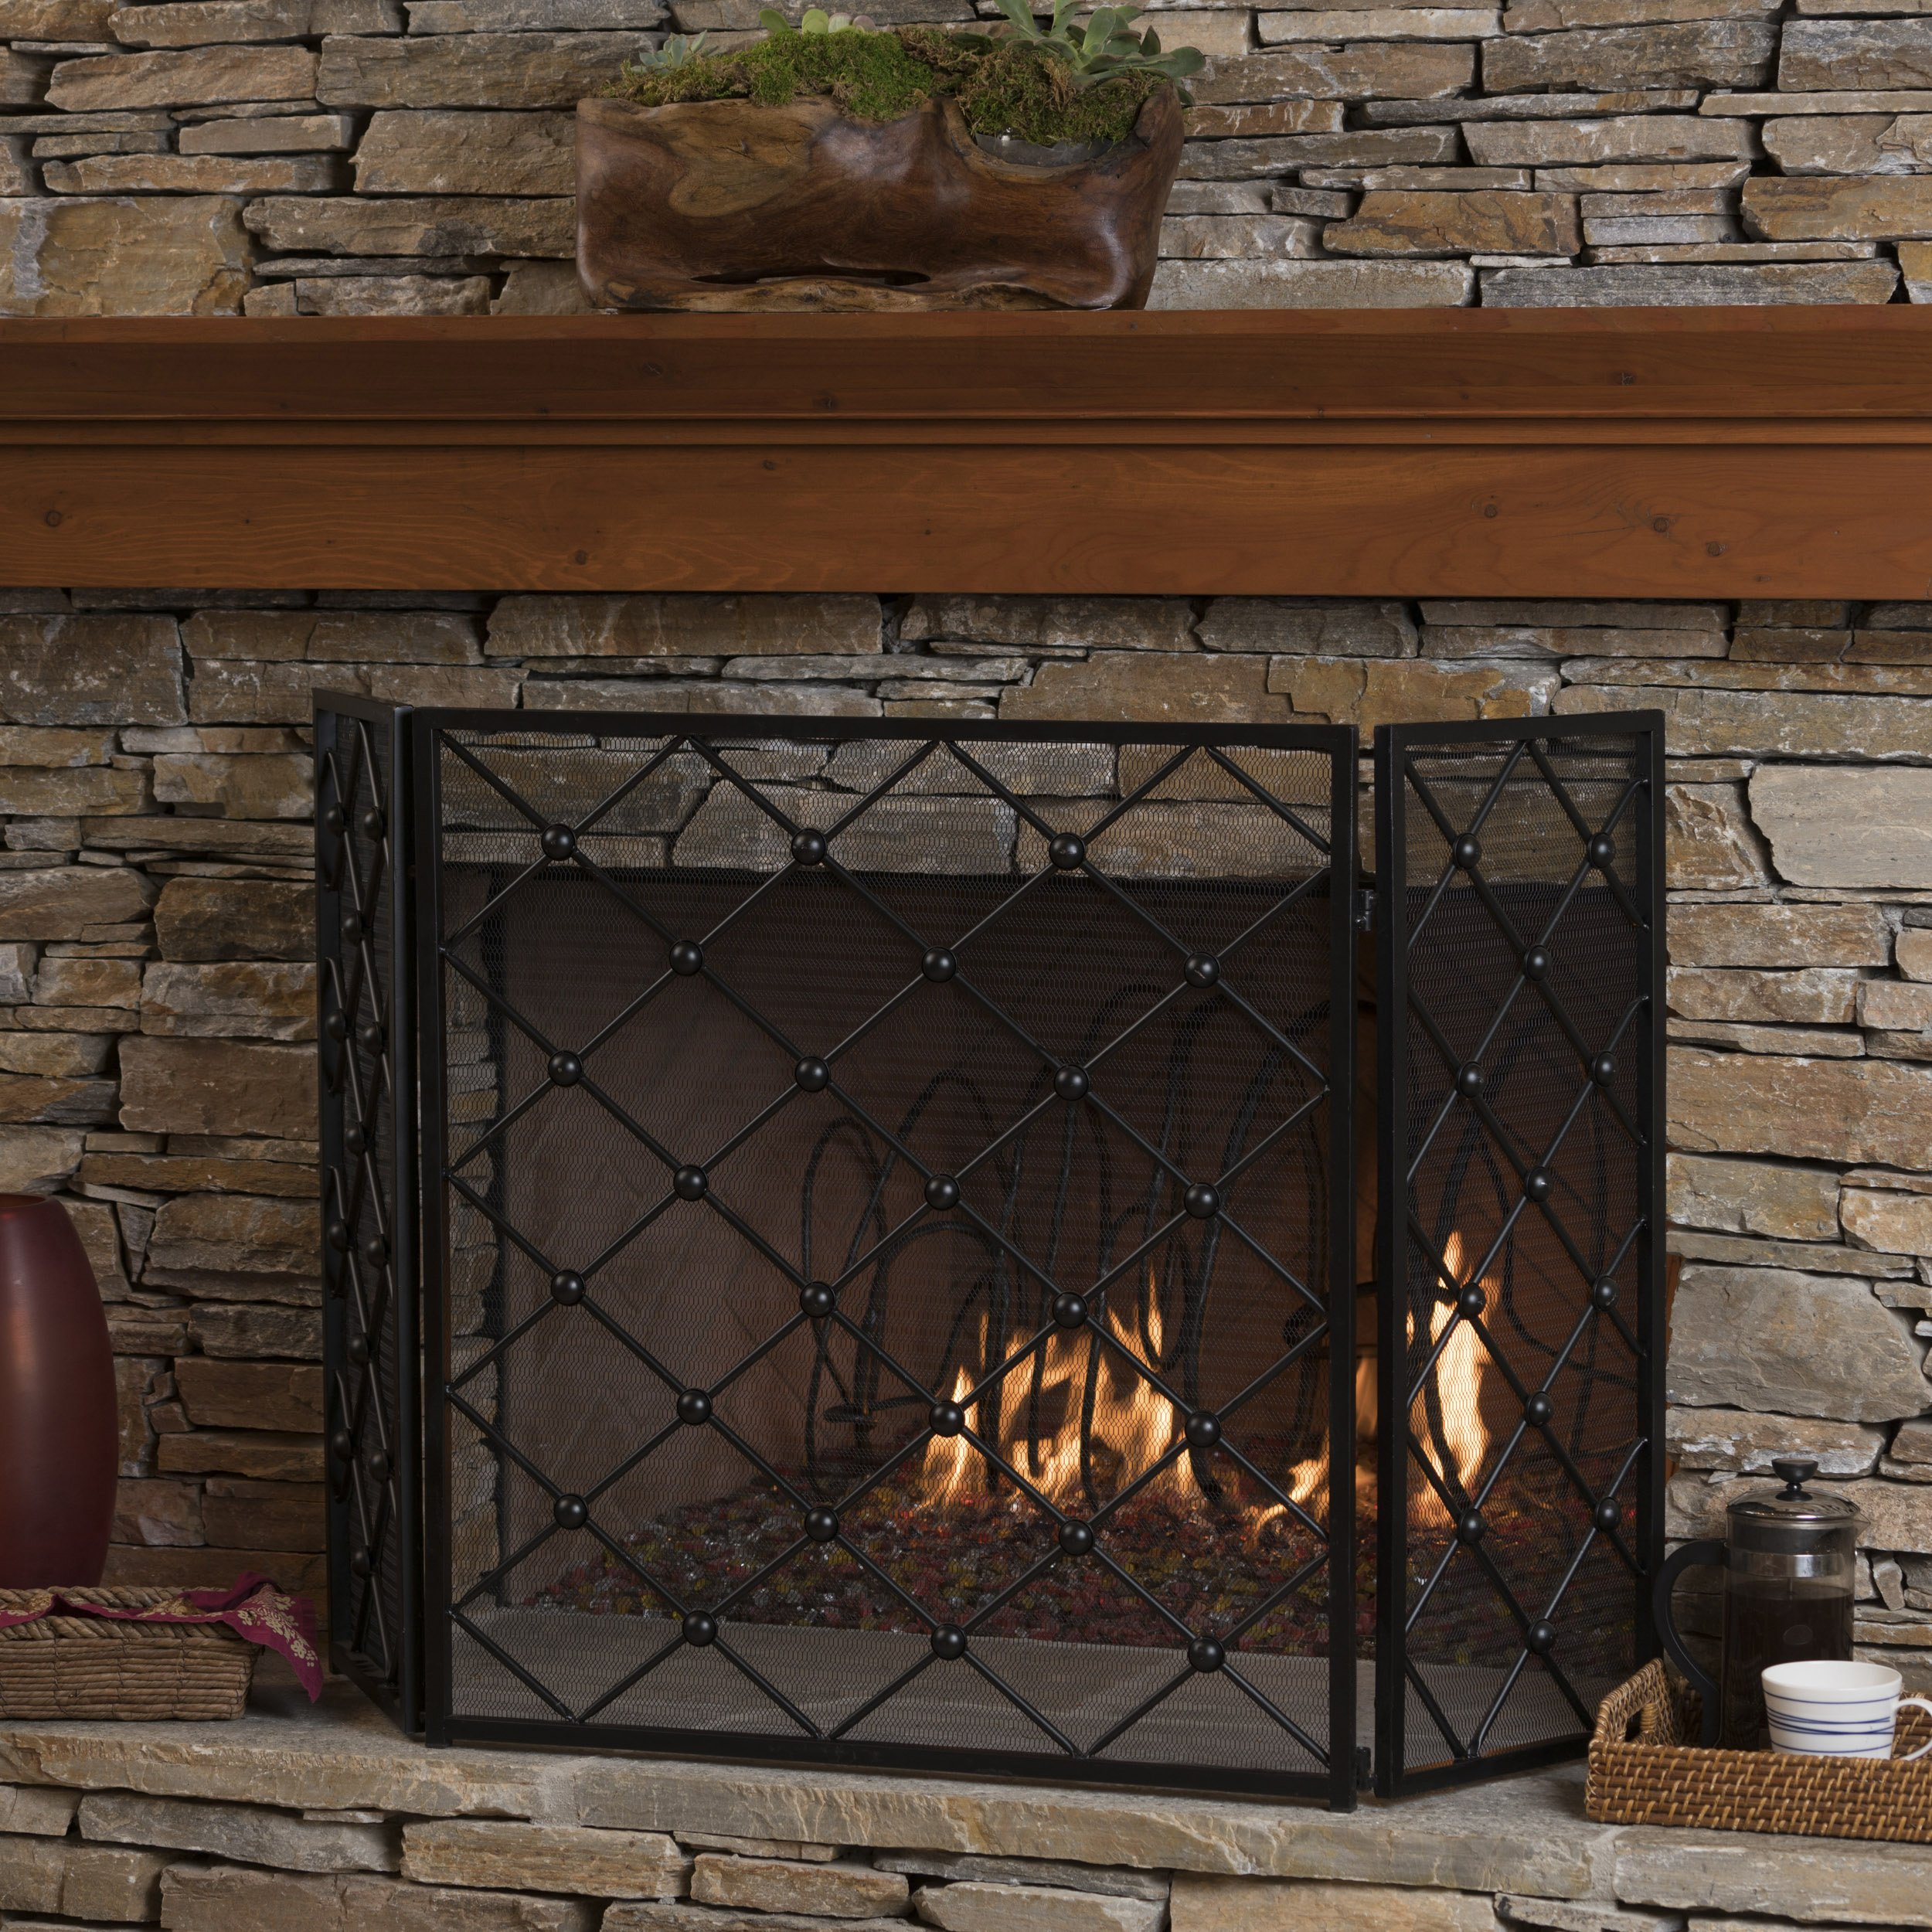 Christopher Knight Home Chamberlain 3 Panelled Black Iron Fireplace Screen by Christopher Knight Home